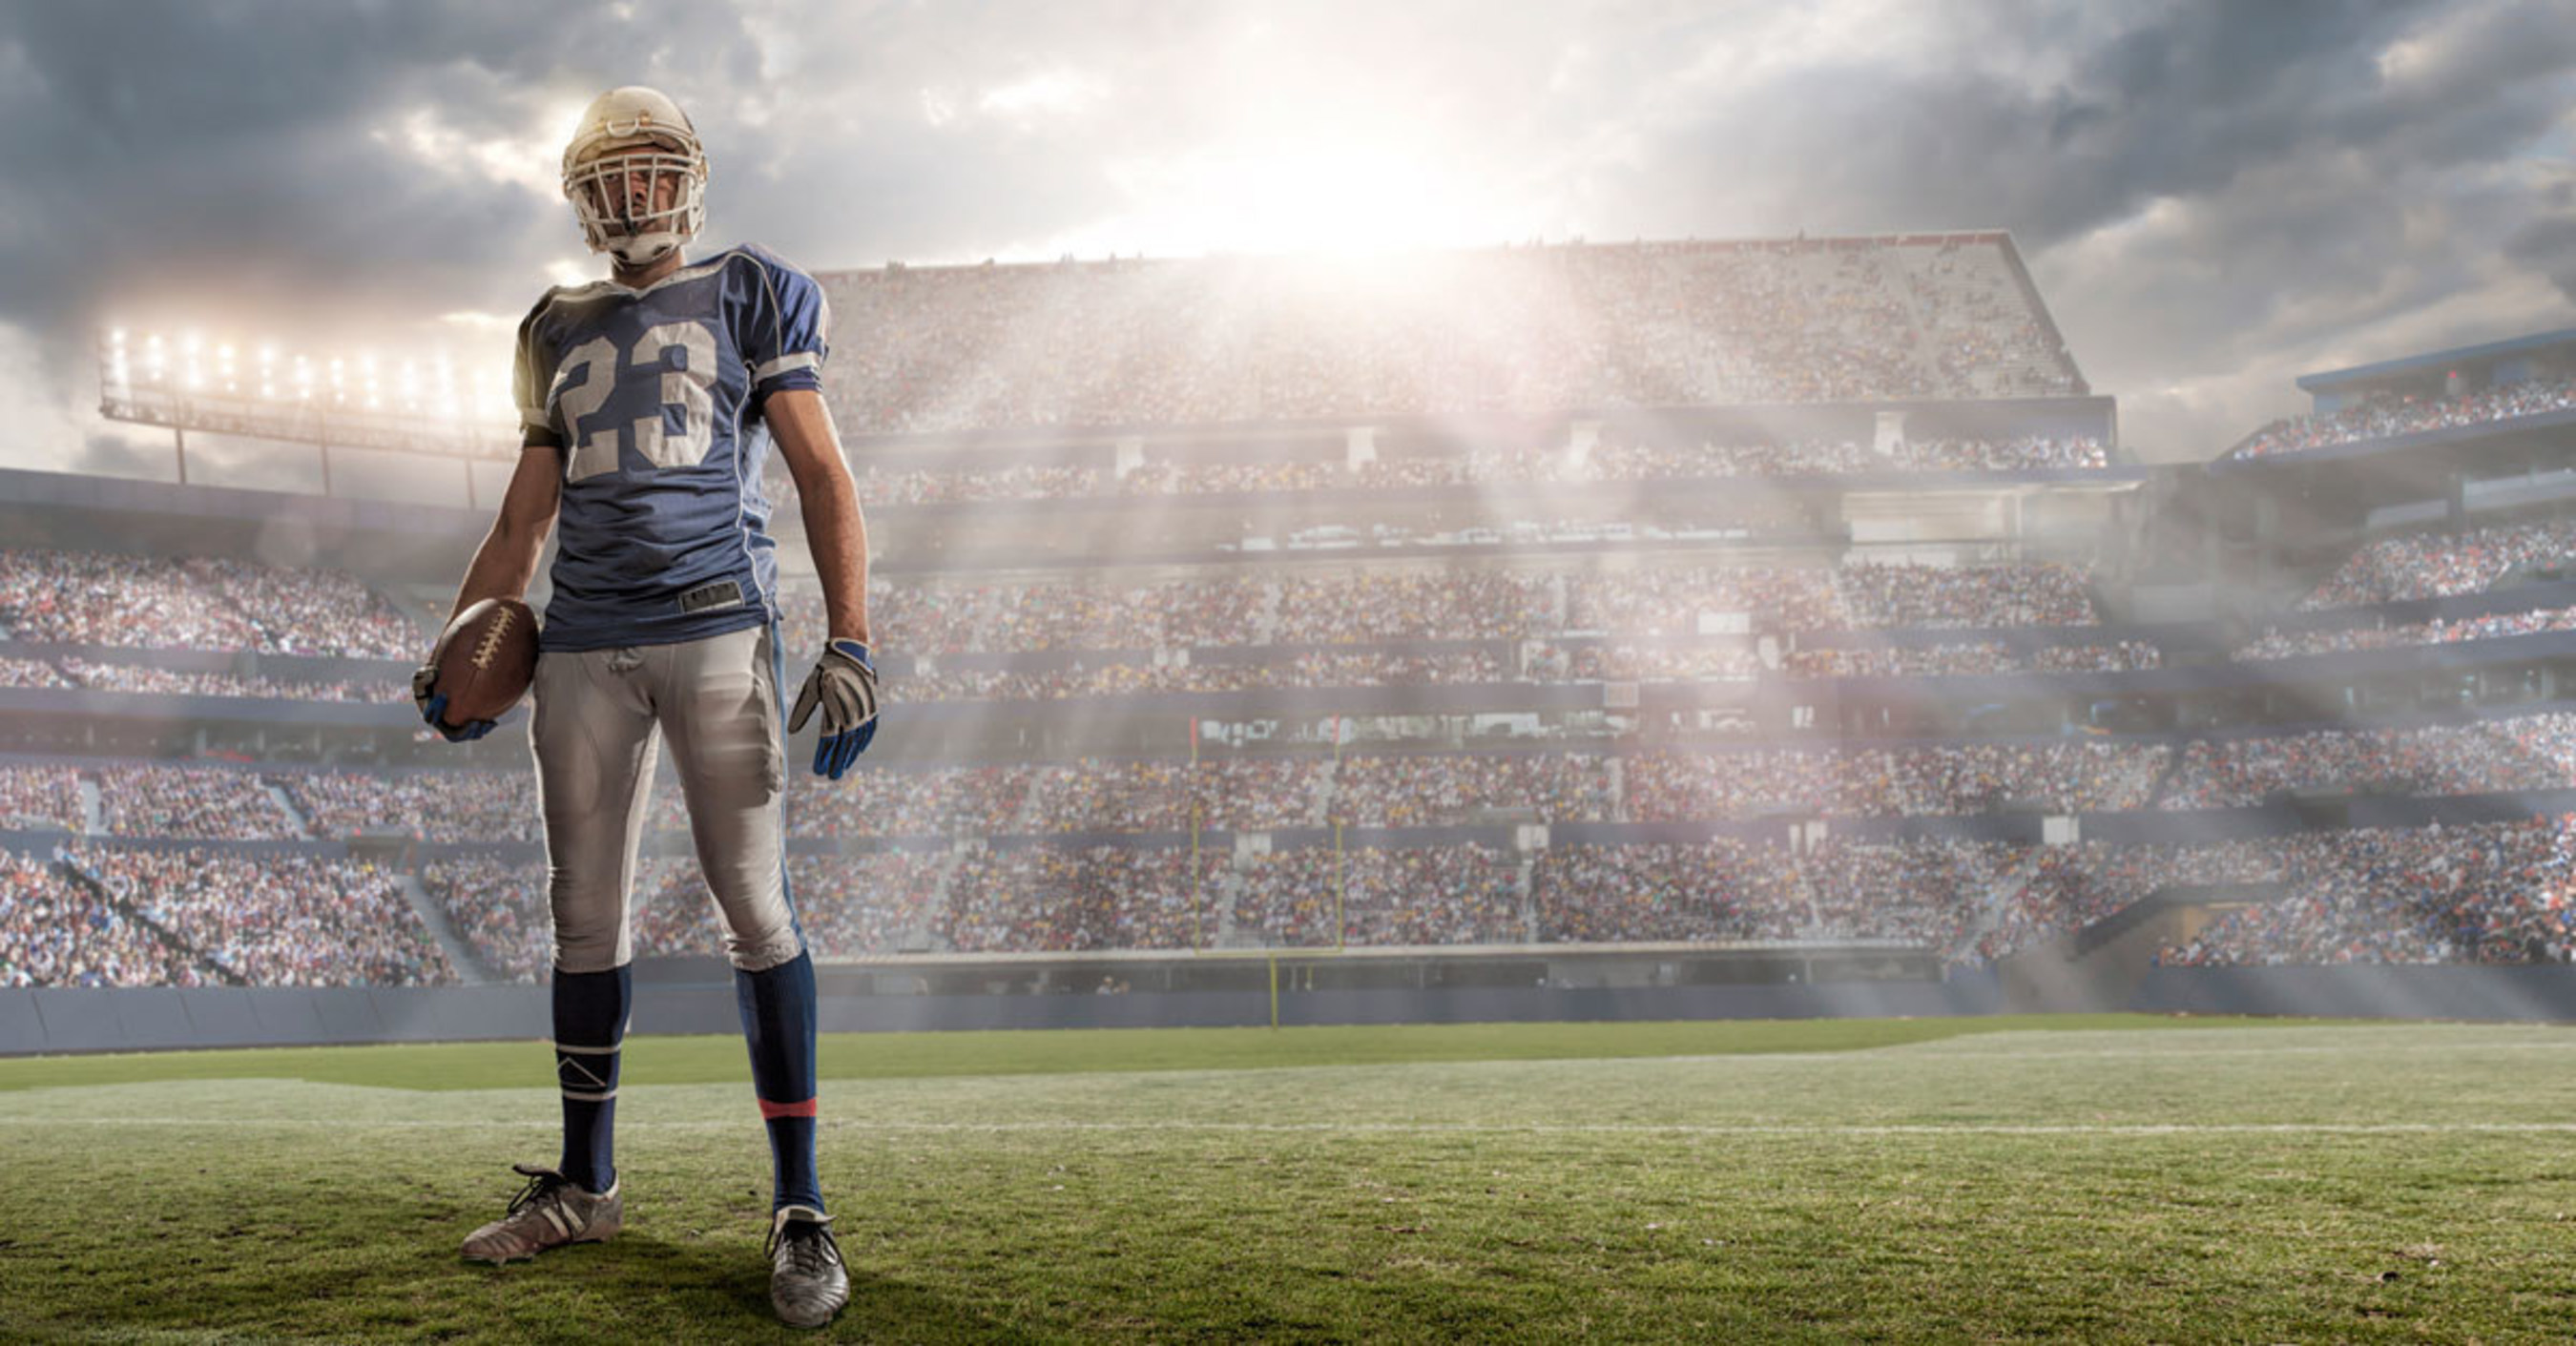 A Fantasy Football Introduction by PC Drafter and ACI